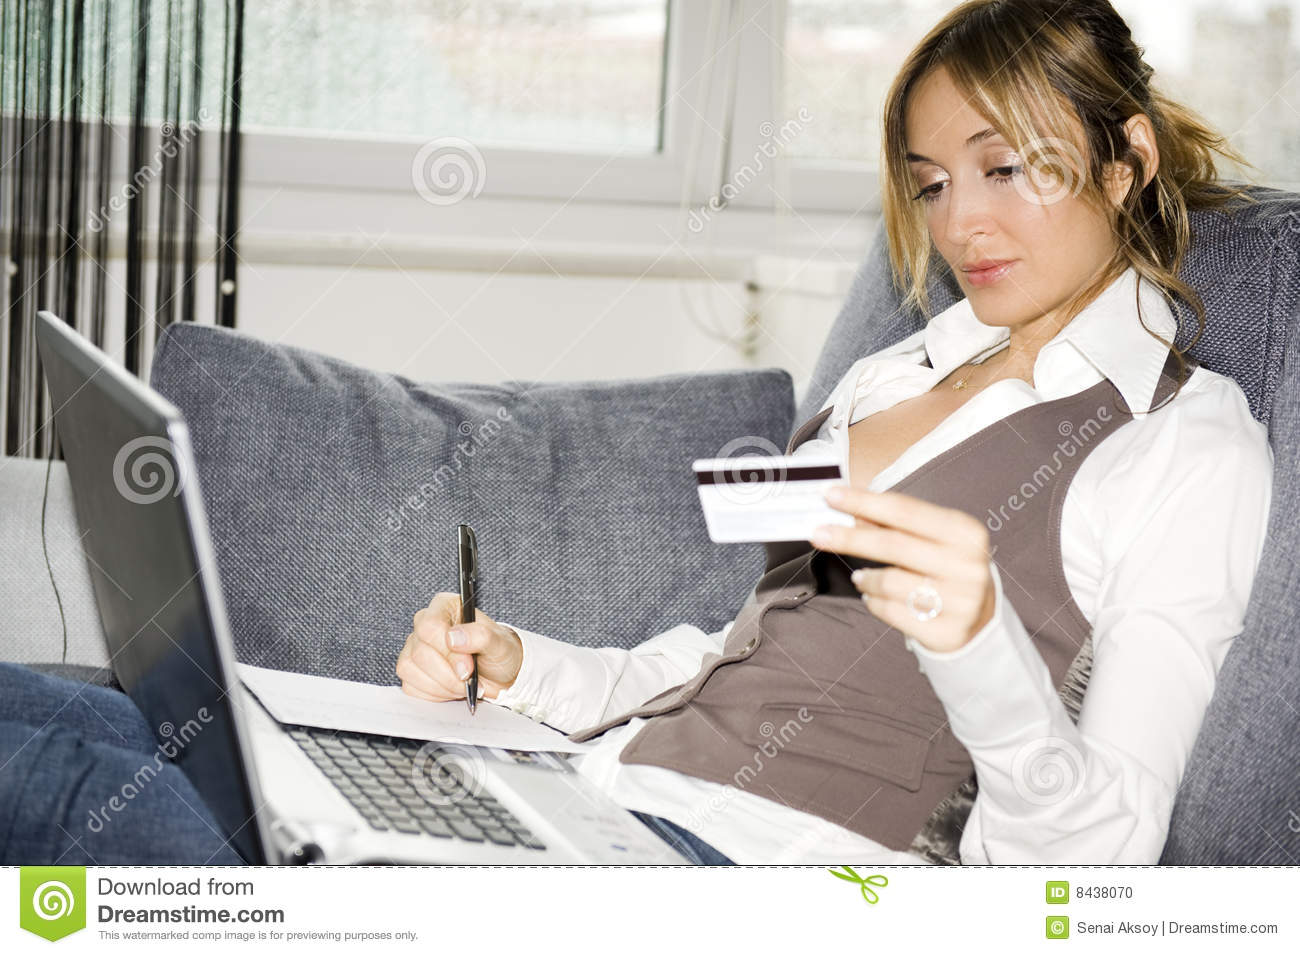 Beautiful woman making payment by credit card